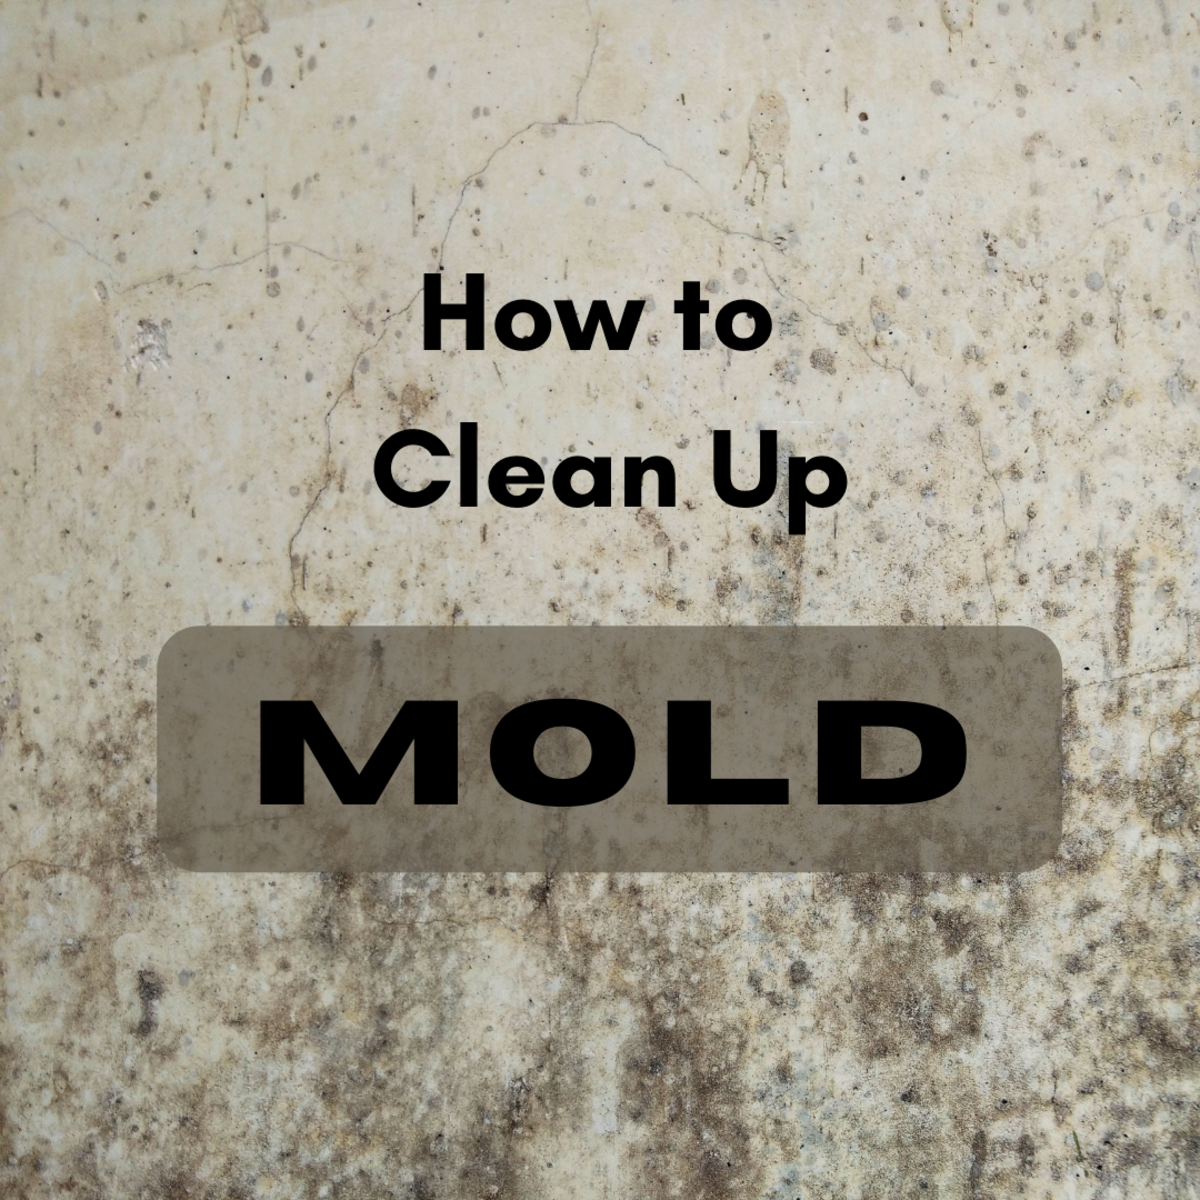 Learn when to call a mold professional, and when you can safely do it yourself.